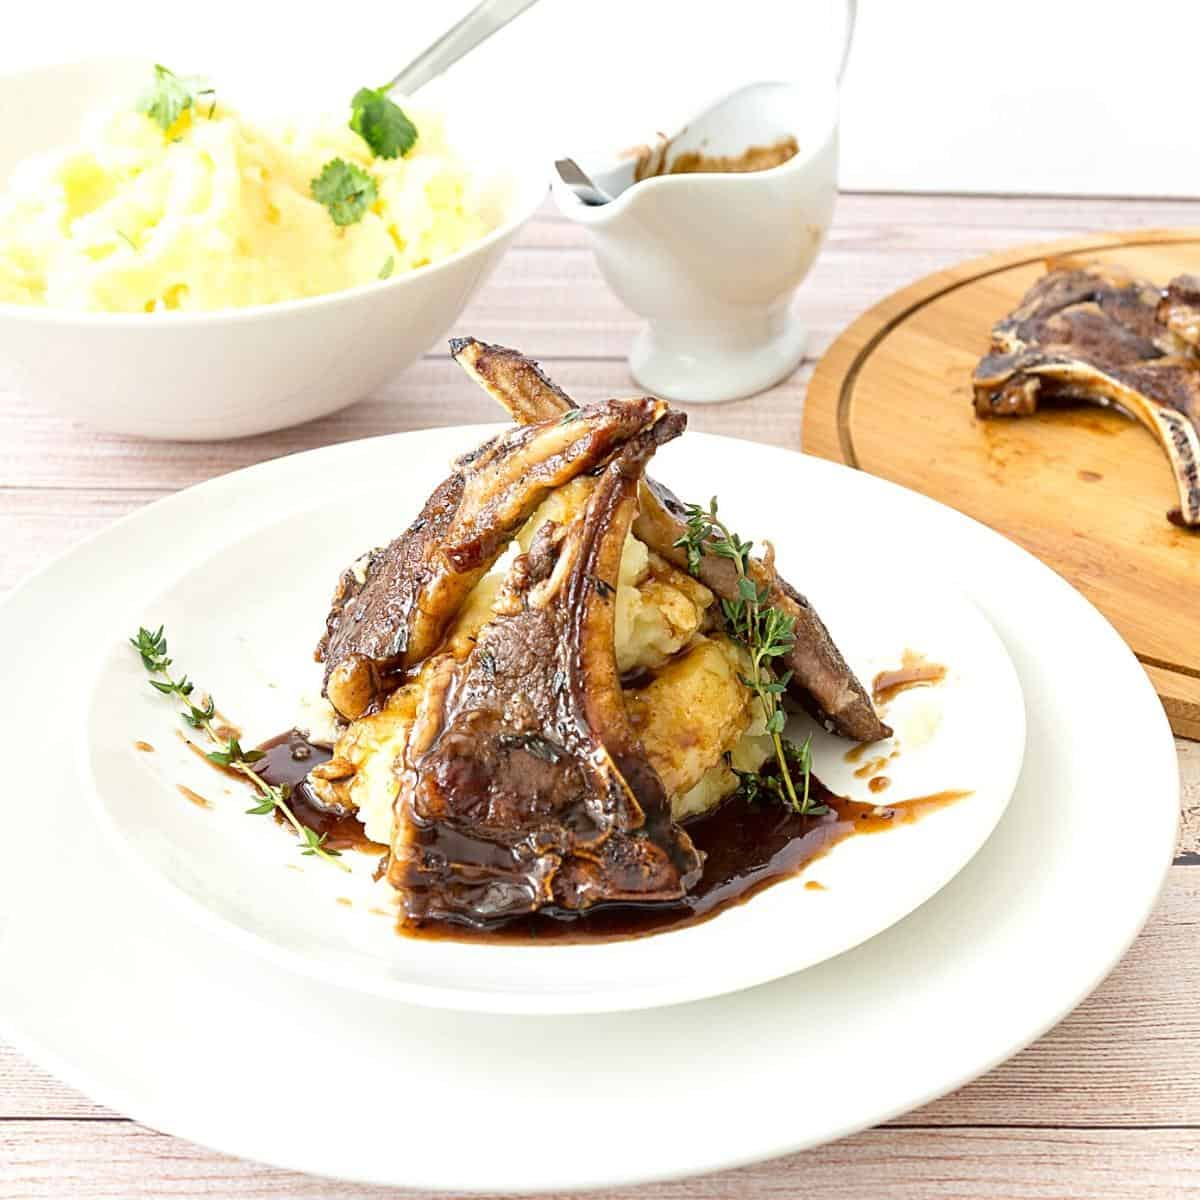 A plate with mashed potatoes and lamb chop with balsamic sauce.